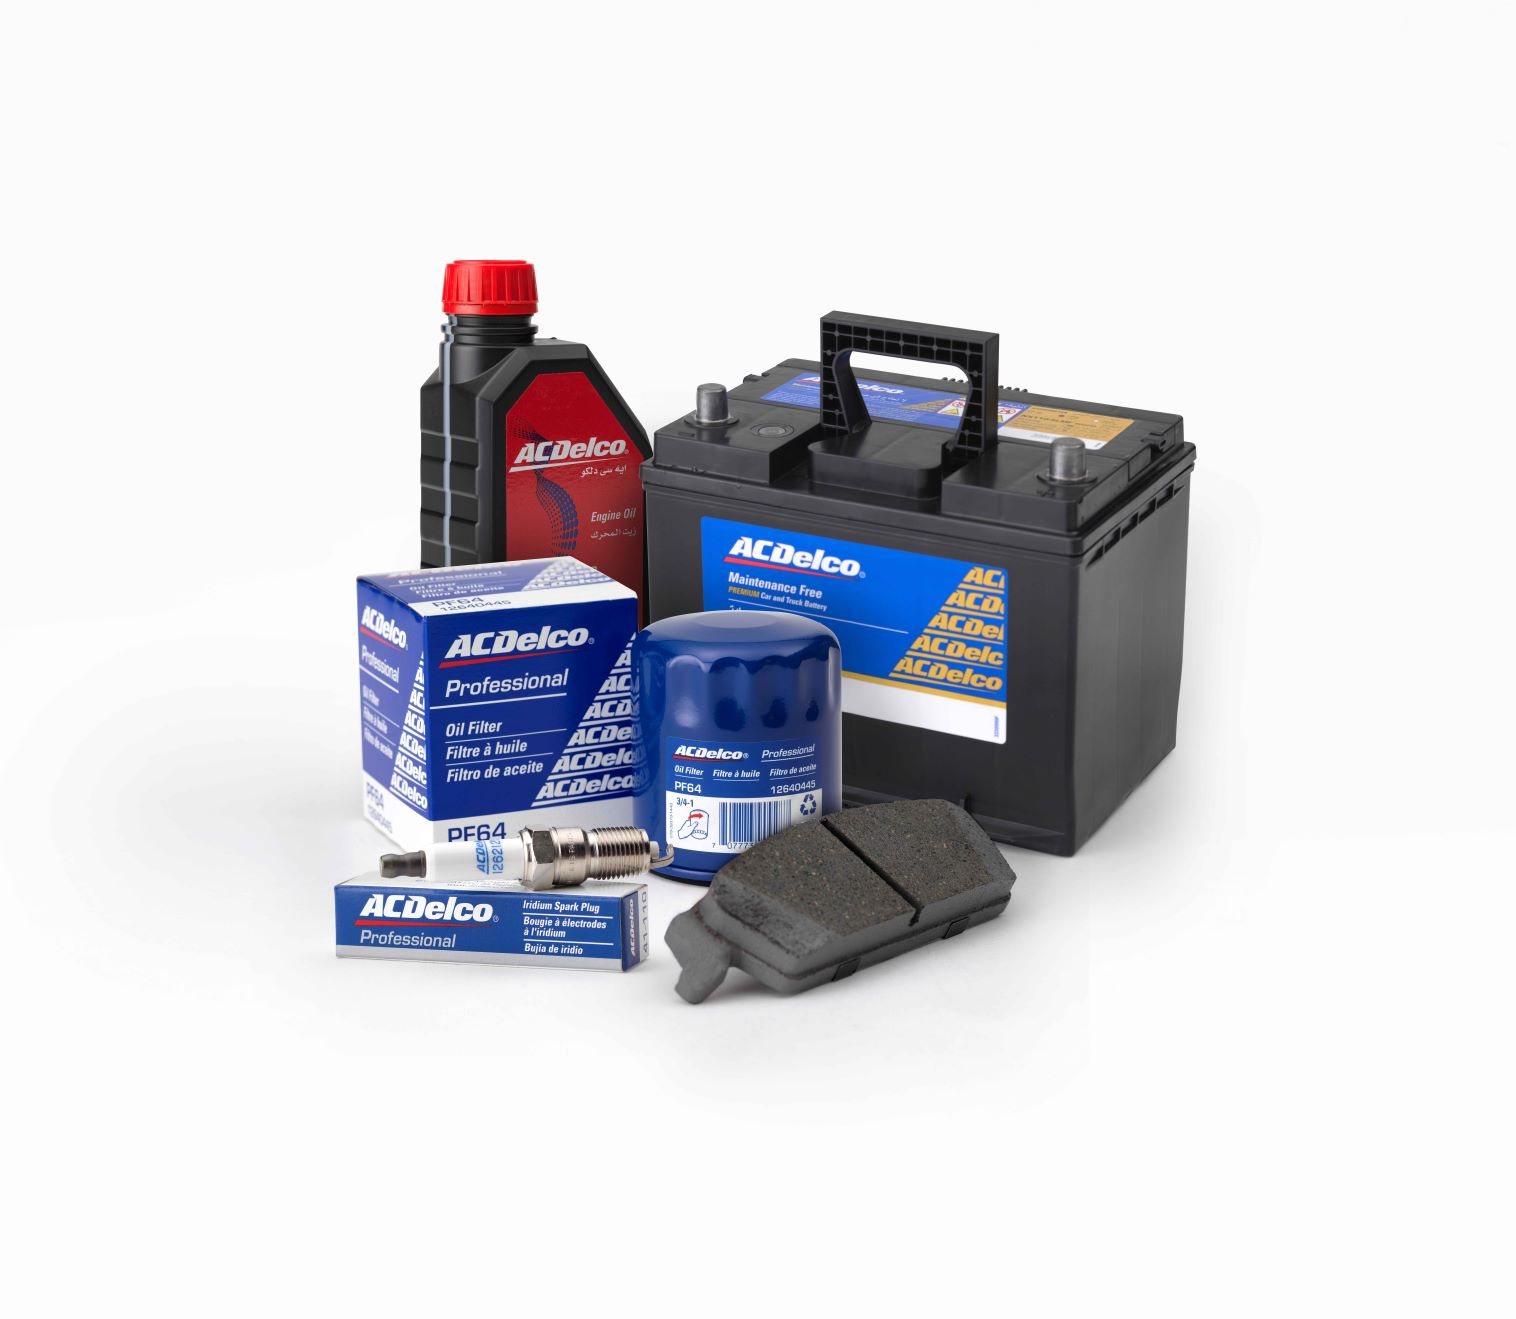 ACDelco Tackles Counterfeiting in the Spare Parts and Aftersales Industry